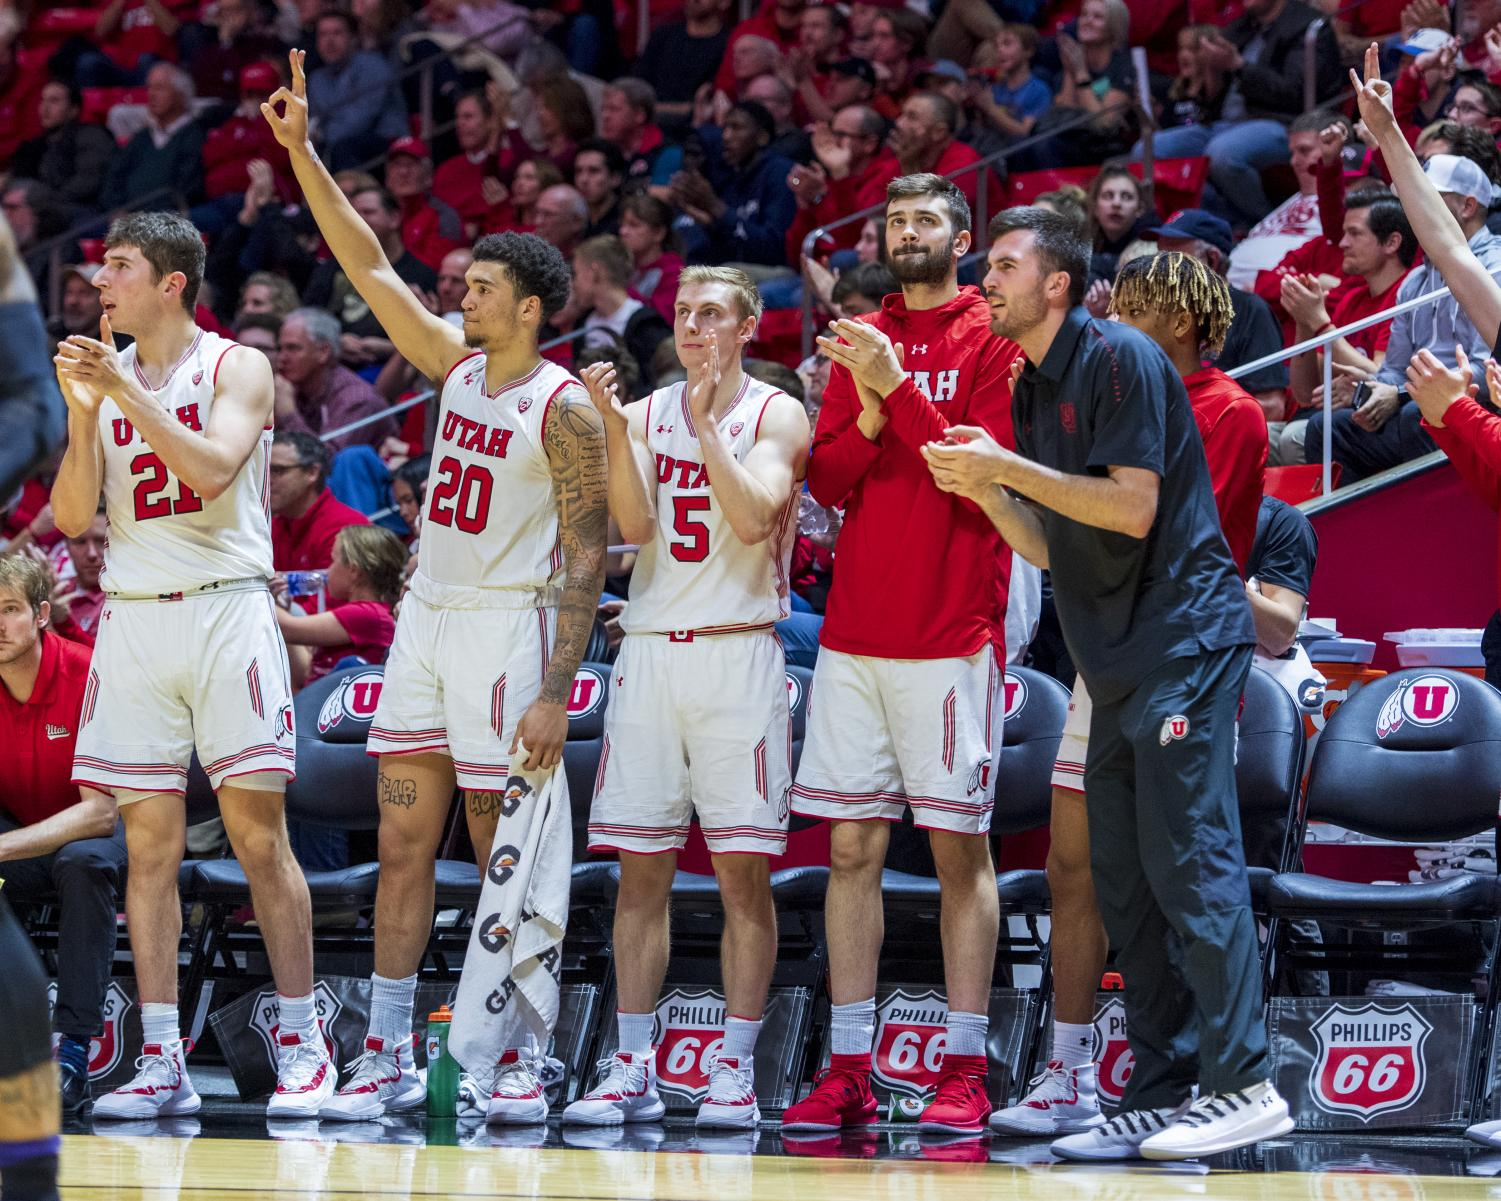 The University of Utah cheer after a three point shot during an NCAA Basketball game vs. The University of Washington at the Jon M. Huntsman Center in Salt Lake City, Utah on Thursday, Jan. 10, 2019. (Photo by Kiffer Creveling   The Daily Utah Chronicle)